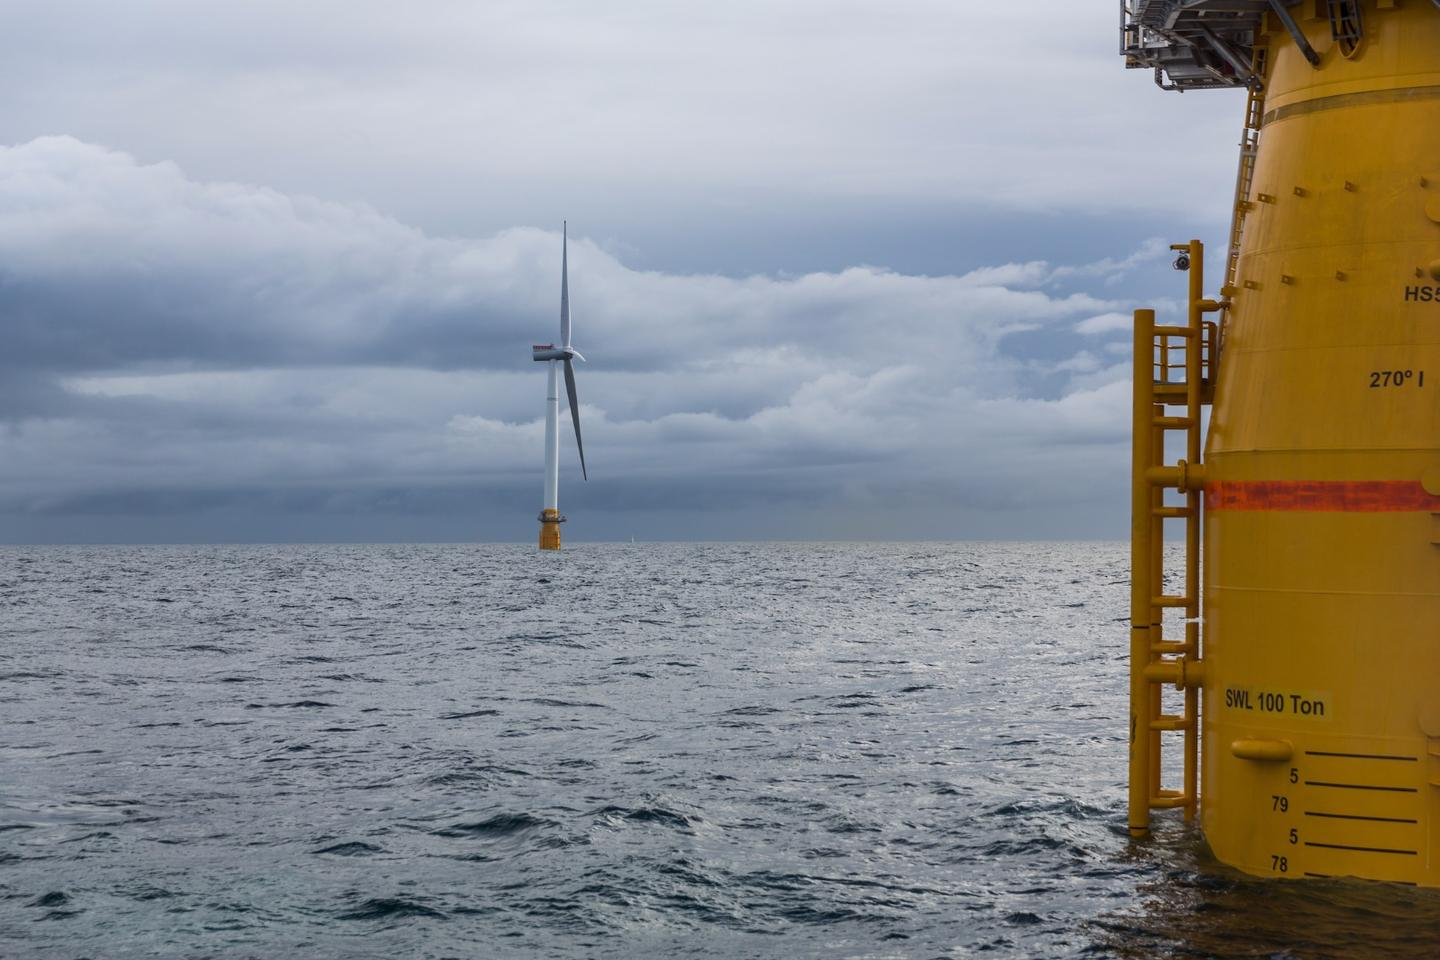 The floating turbines used in the Hywind farmcan operate in water up to10 times deeperthan turbinesfixed to the seafloor, opening up far more opportunities for offshore wind farms